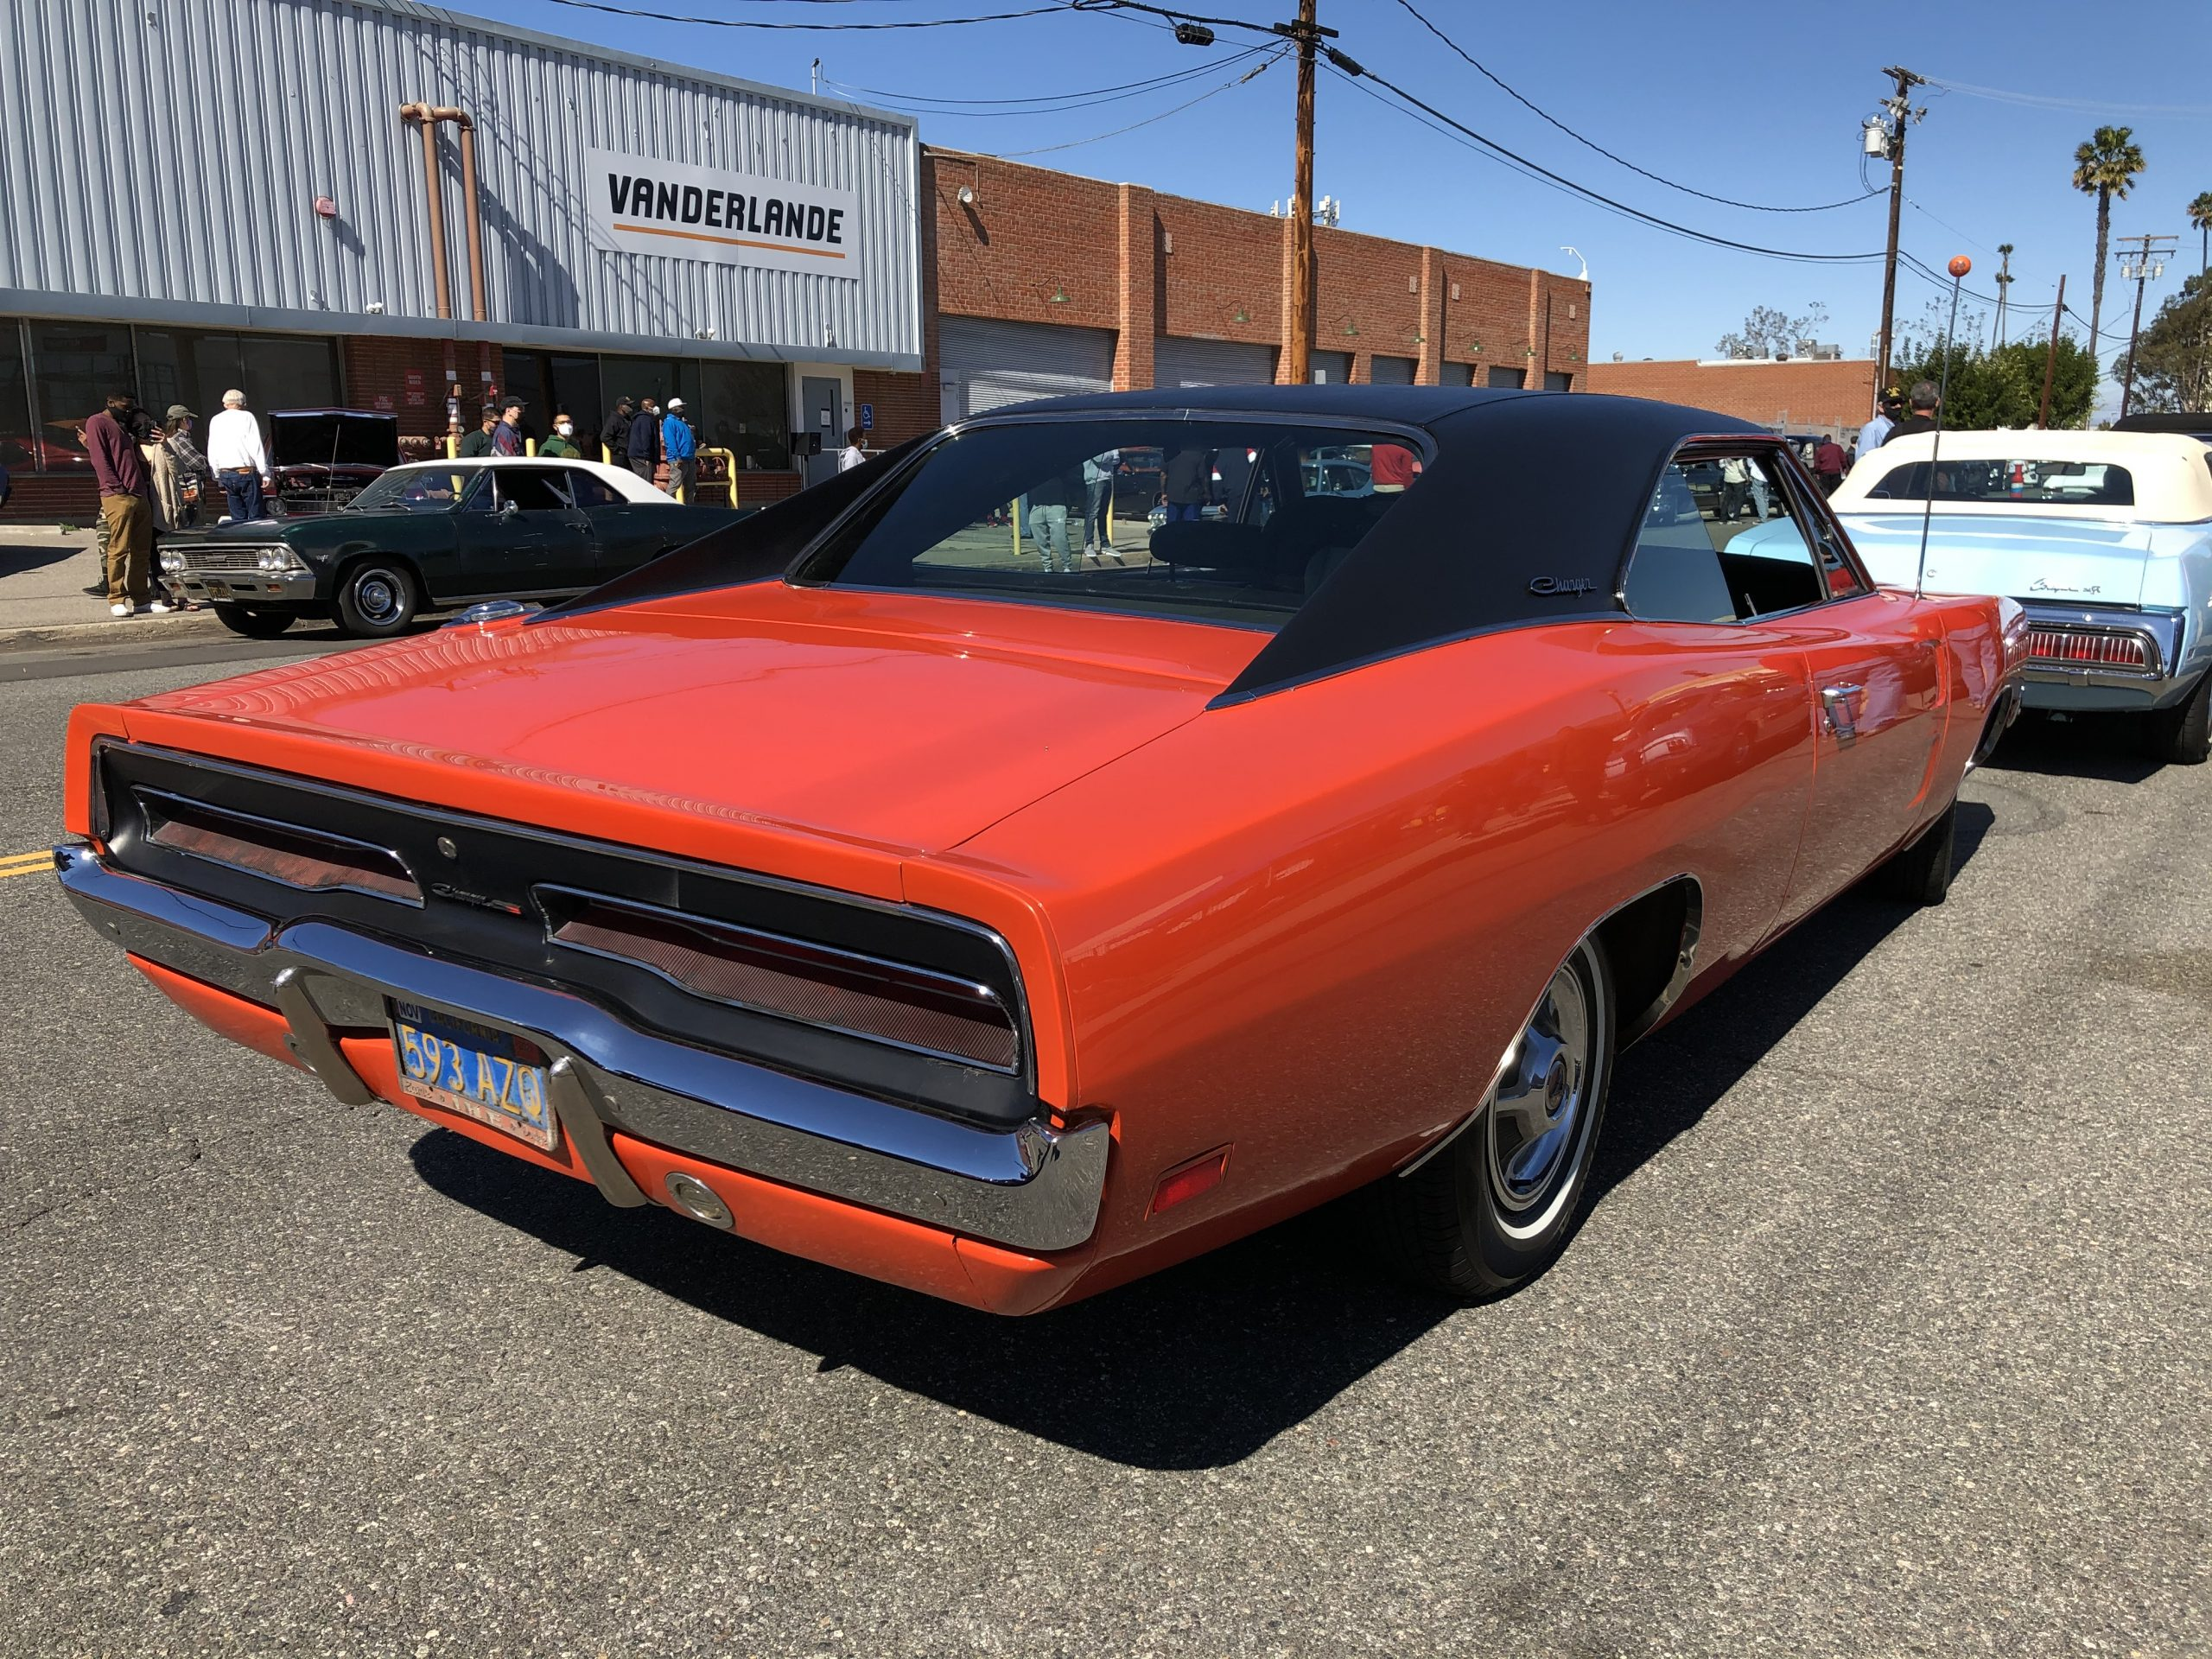 Dodge Charger at the adm